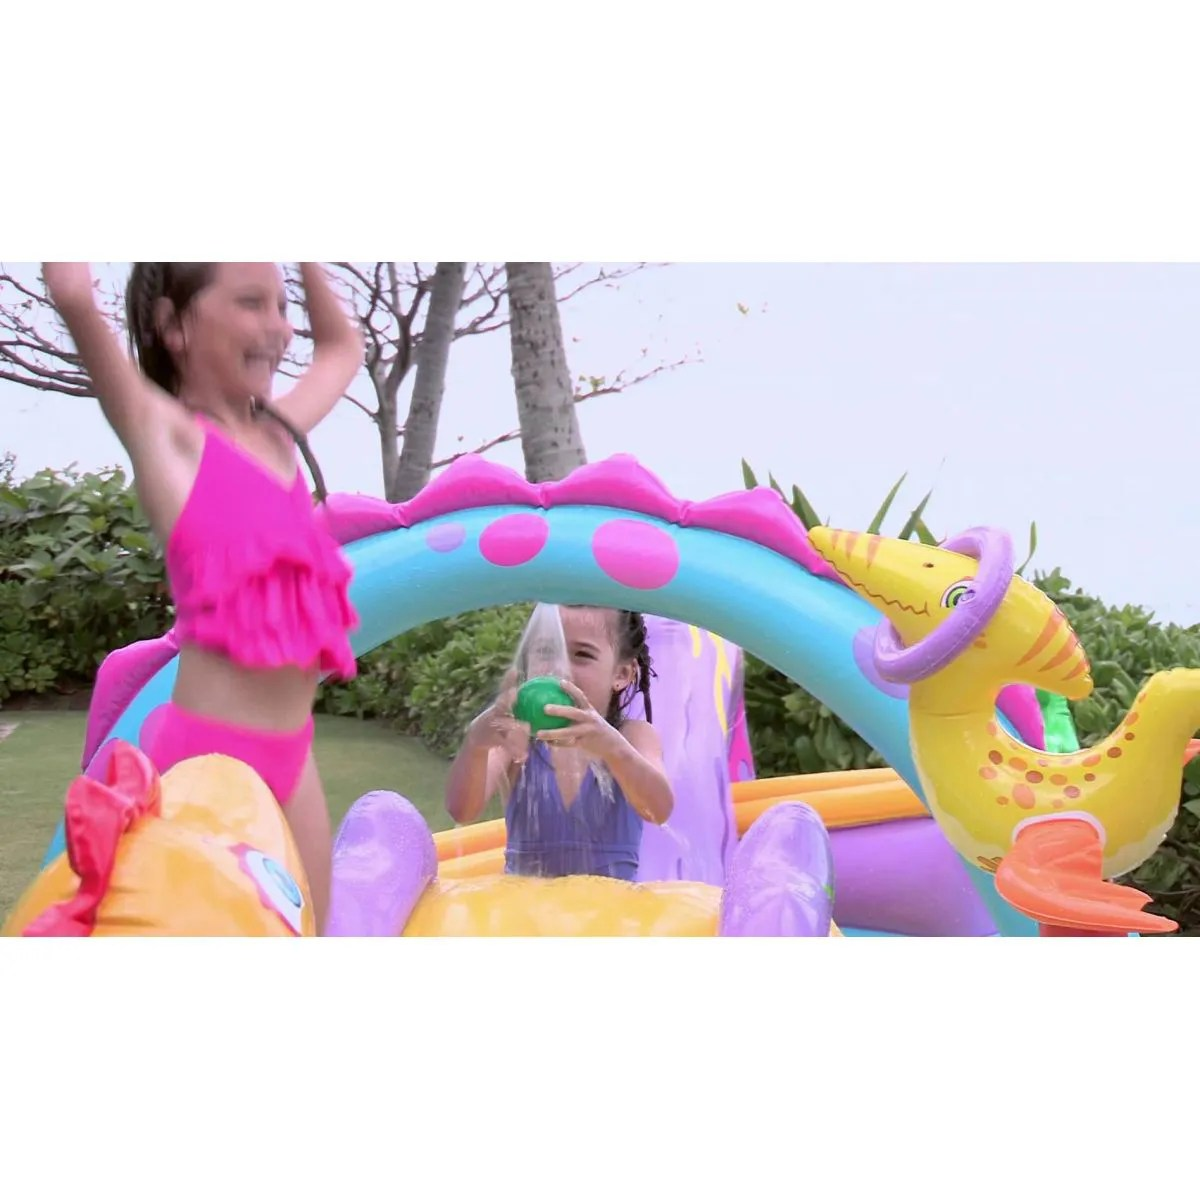 Piscina Intex Infantil Piscina Playcenter Infantil Floresta 280 Litros Intex